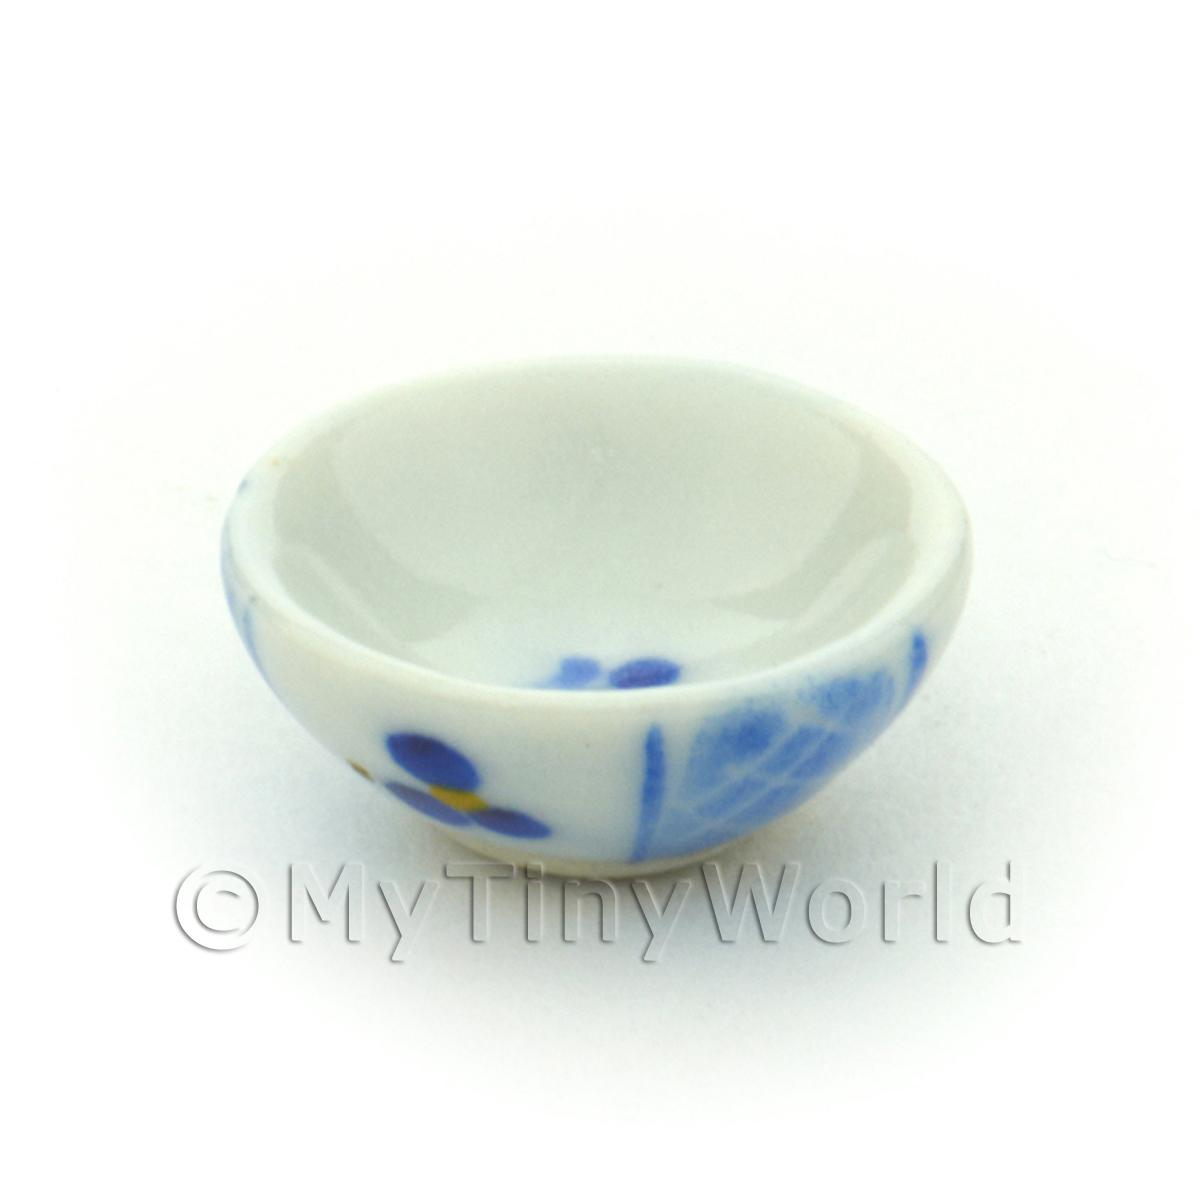 Dolls House Miniature 16mm Blue Lace Design Ceramic Bowl